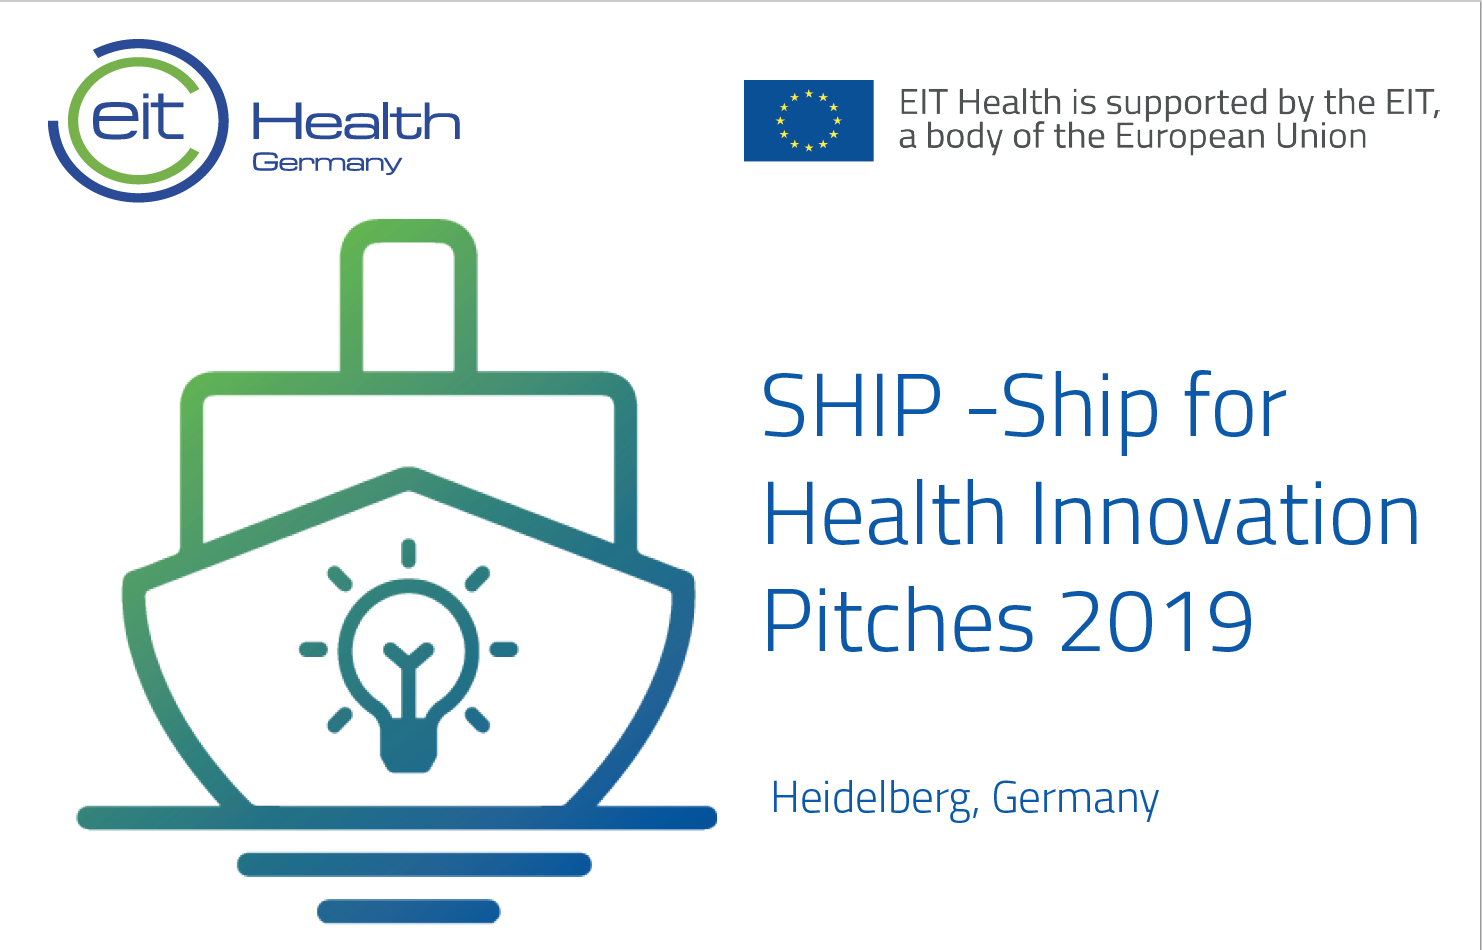 SHIP – Ship for Health Innovation Pitches